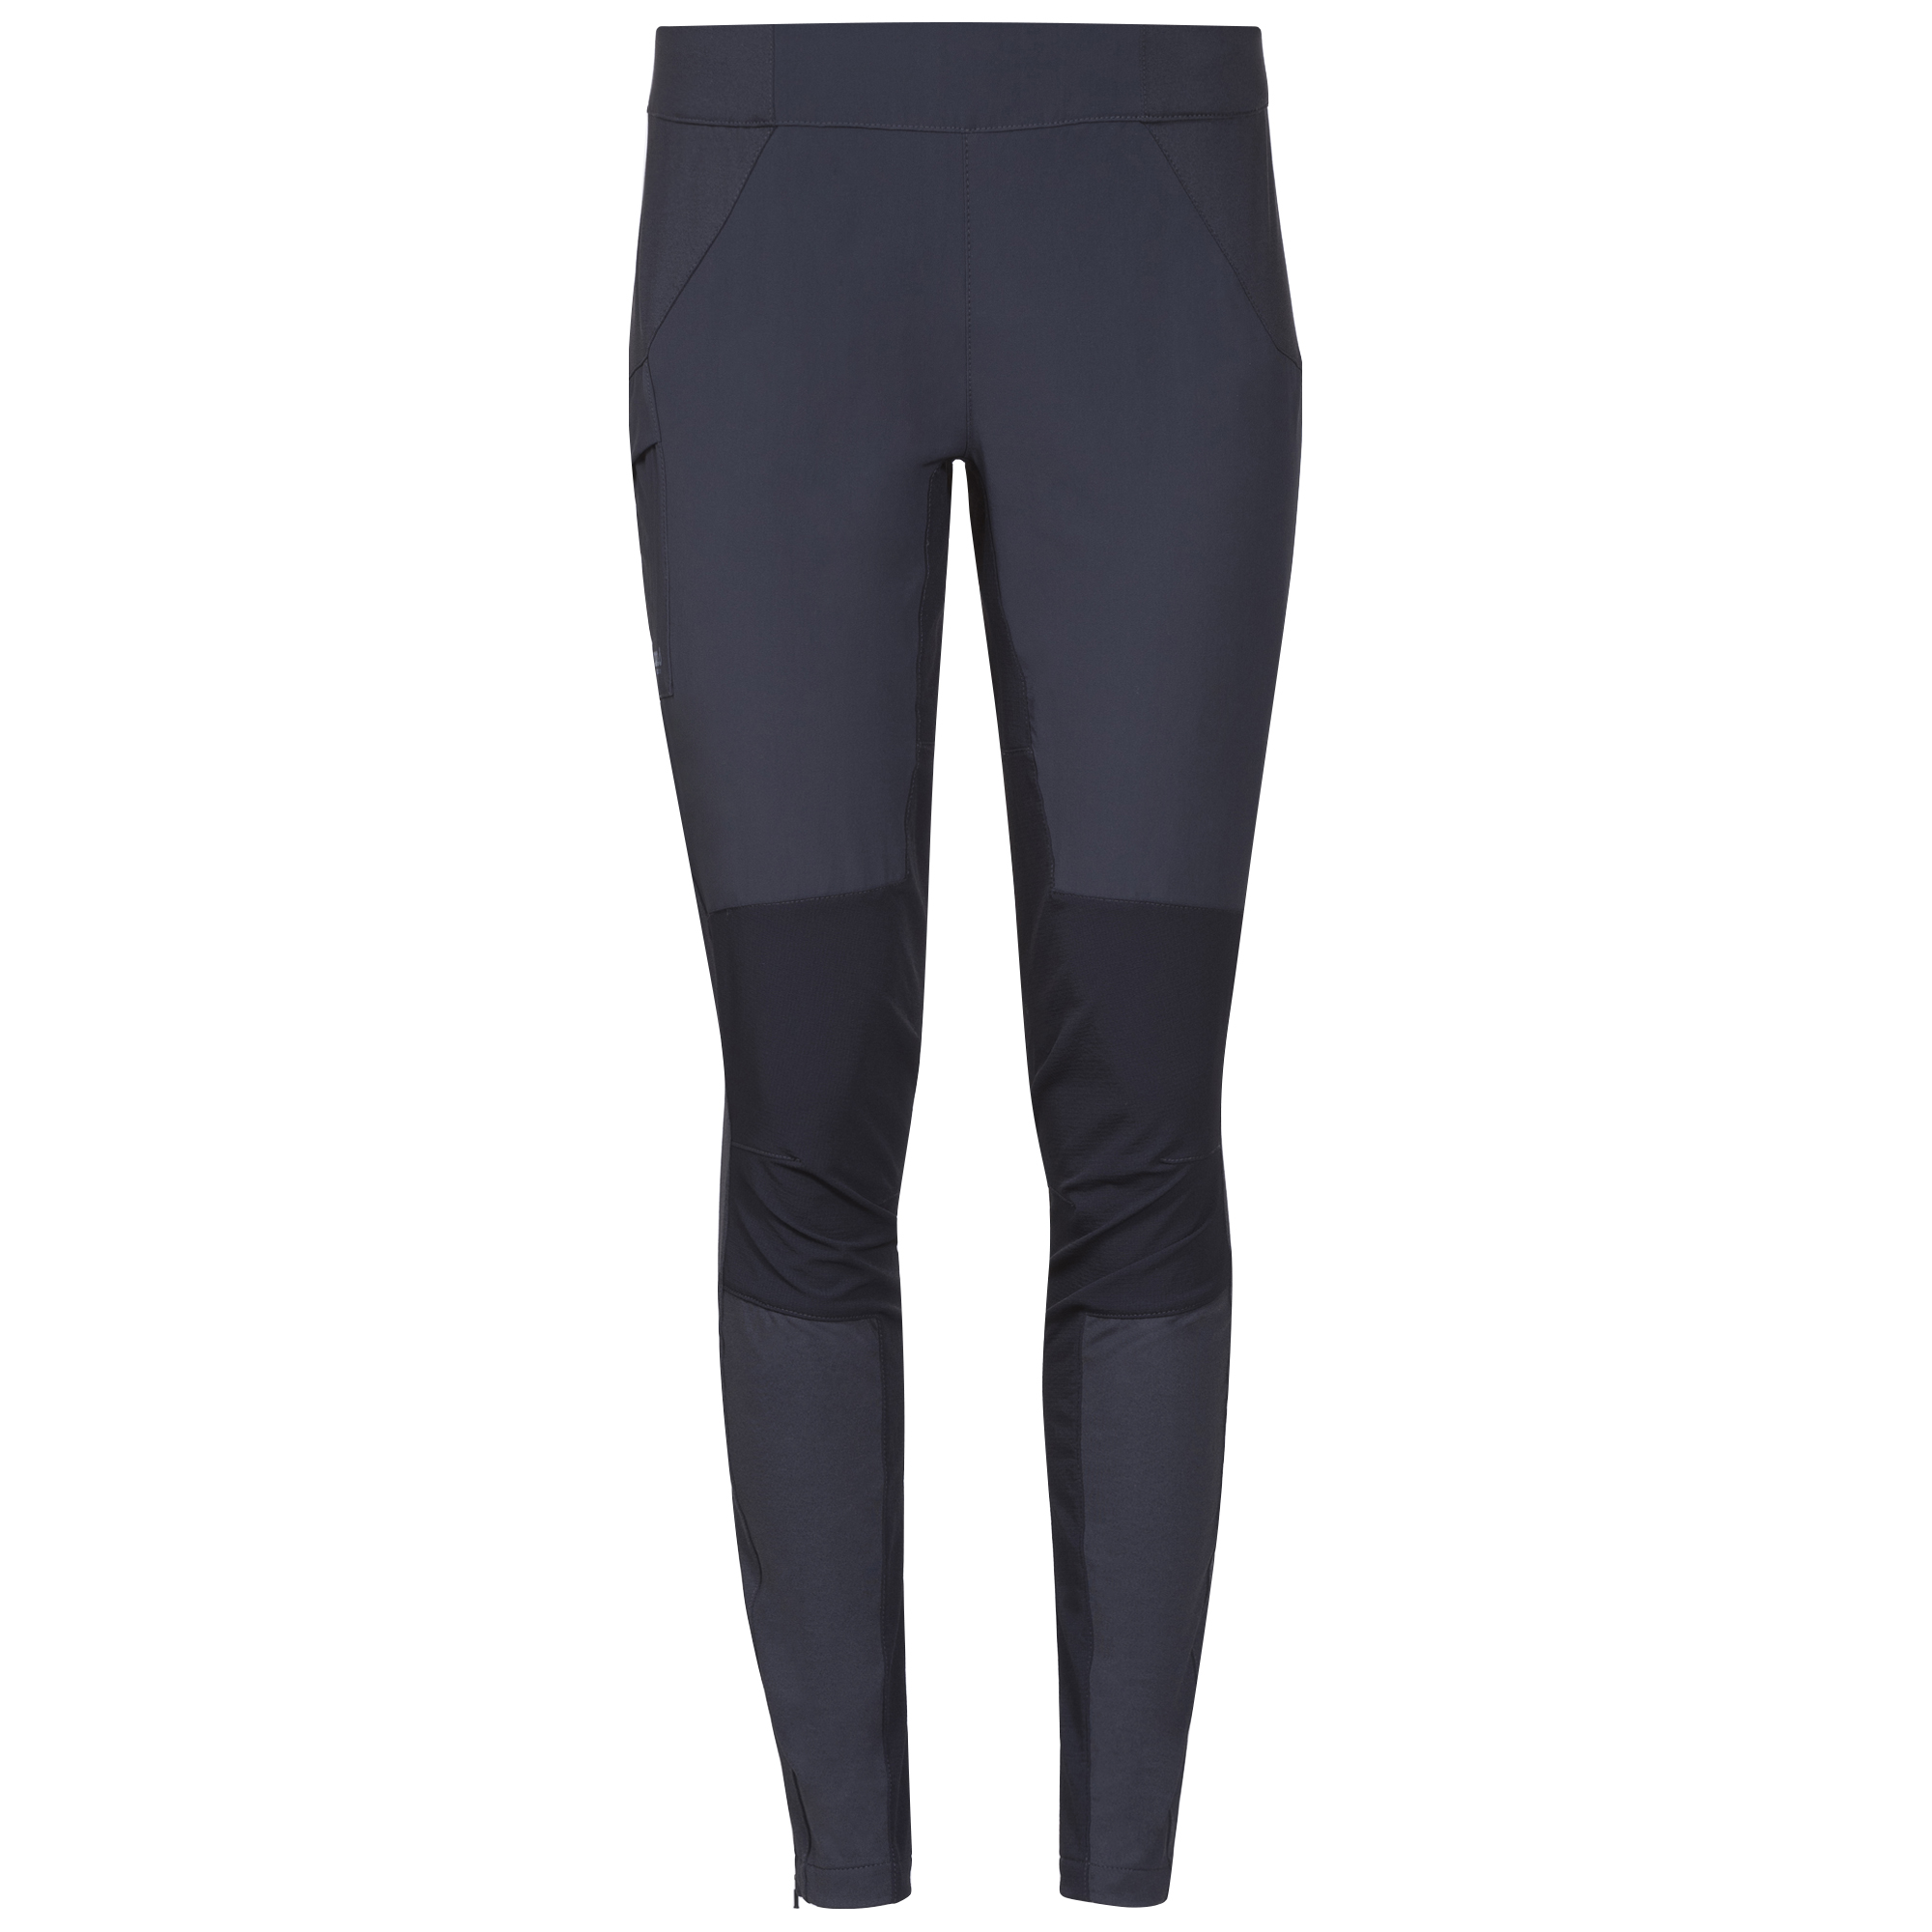 Bergans of Norway Pantaloni Bergans Floyen Lady - Navy